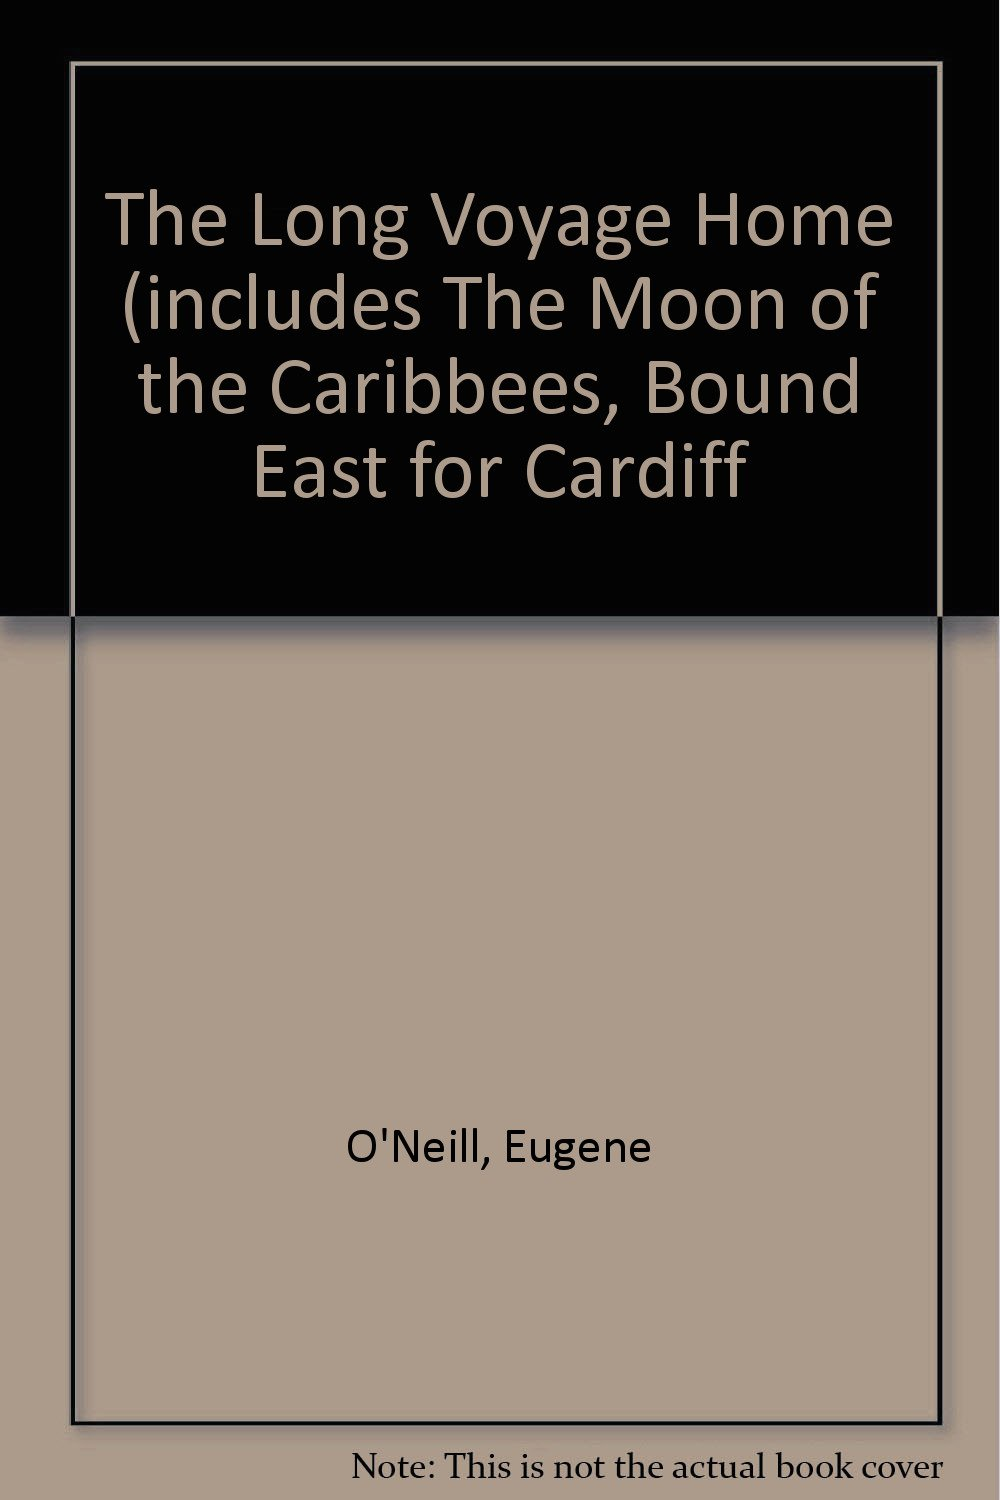 the long voyage home includes the moon of the caribbees bound east for cardiff